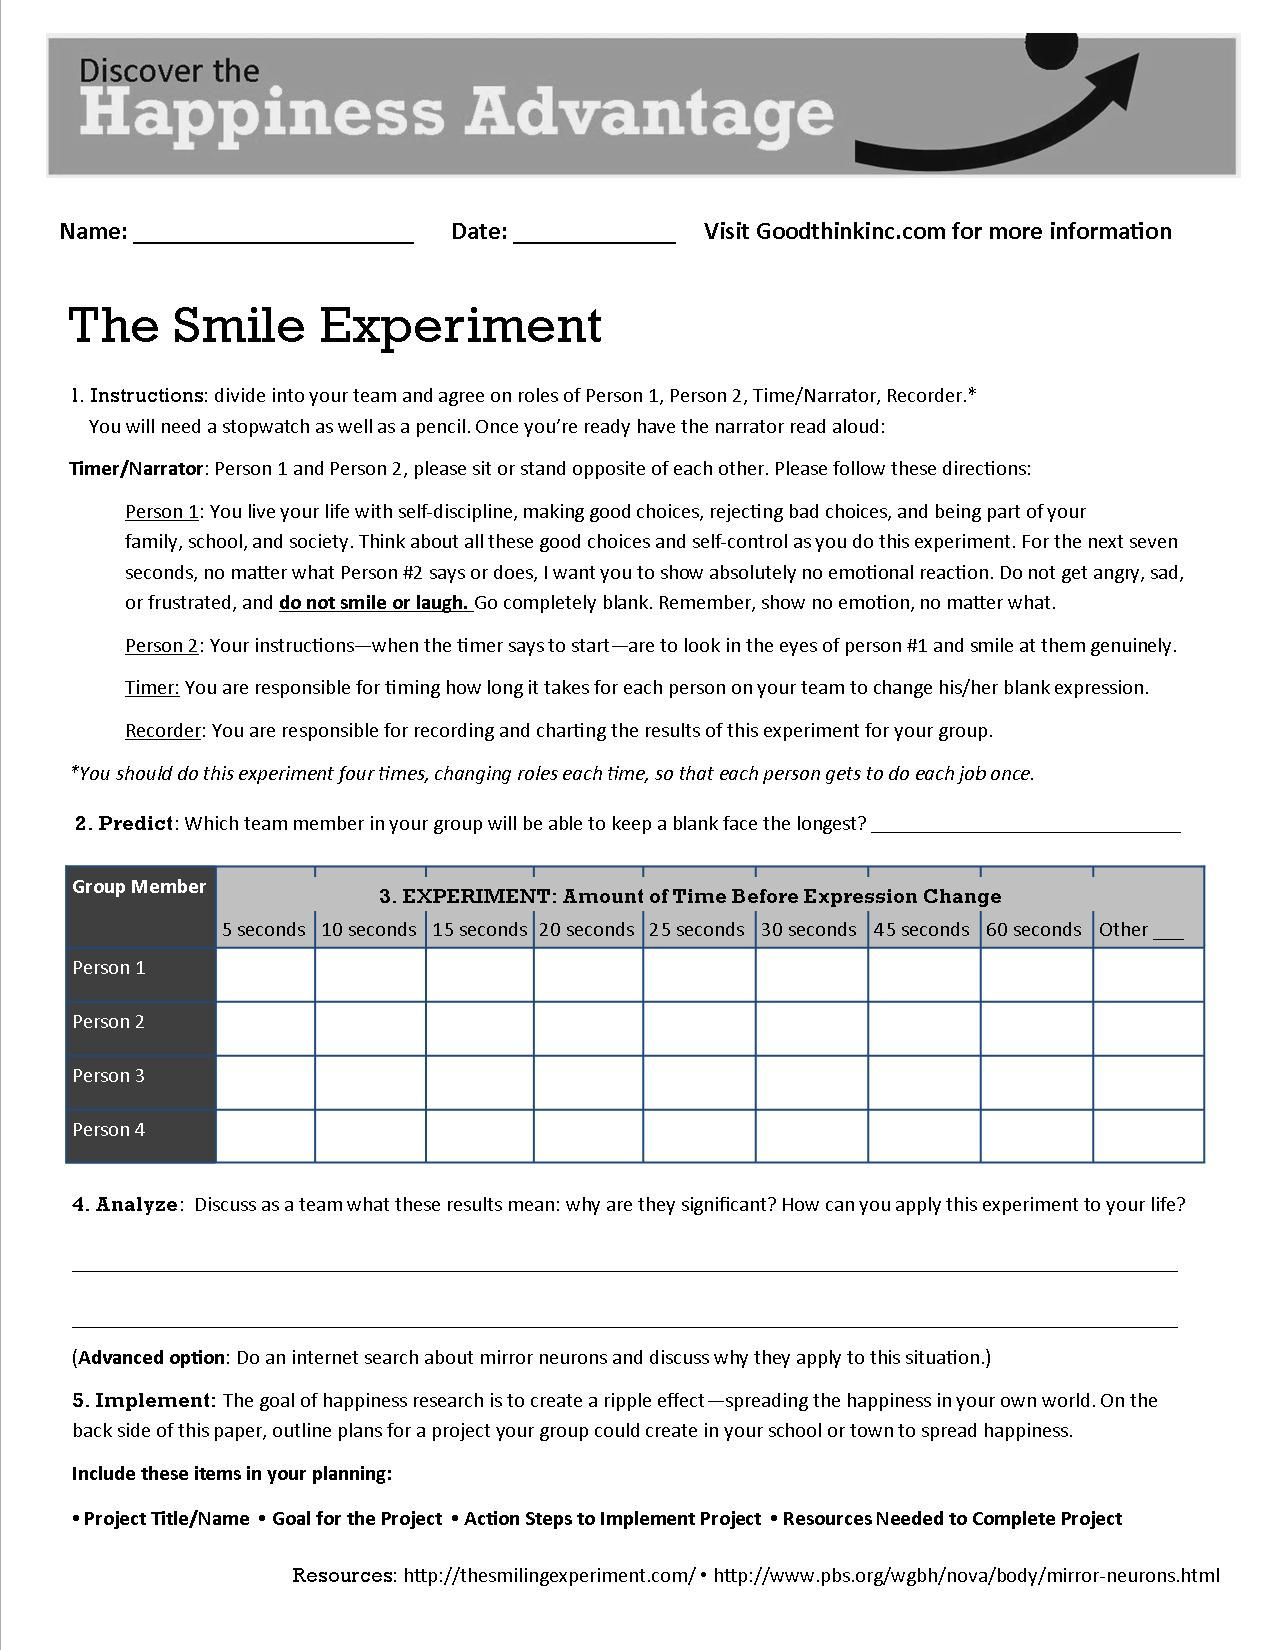 Worksheet Grief Worksheet therapy and self help worksheets kims counseling corner the smile experiment